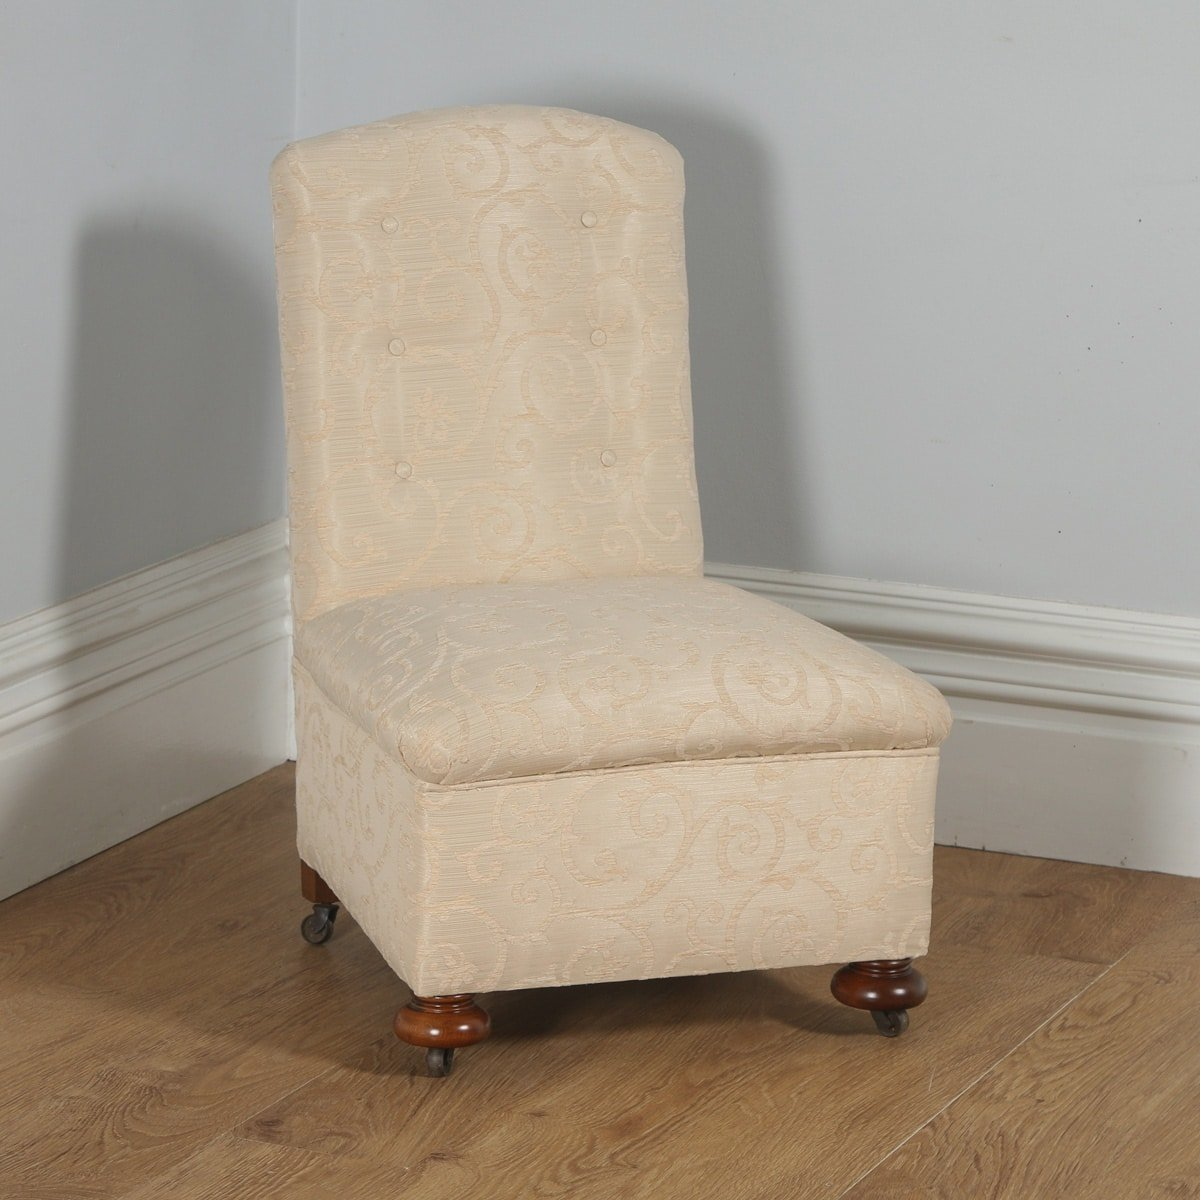 Antique English Victorian Walnut Howard U0026 Sons Style Button Upholstered  Nursing / Occasional Chair (Circa